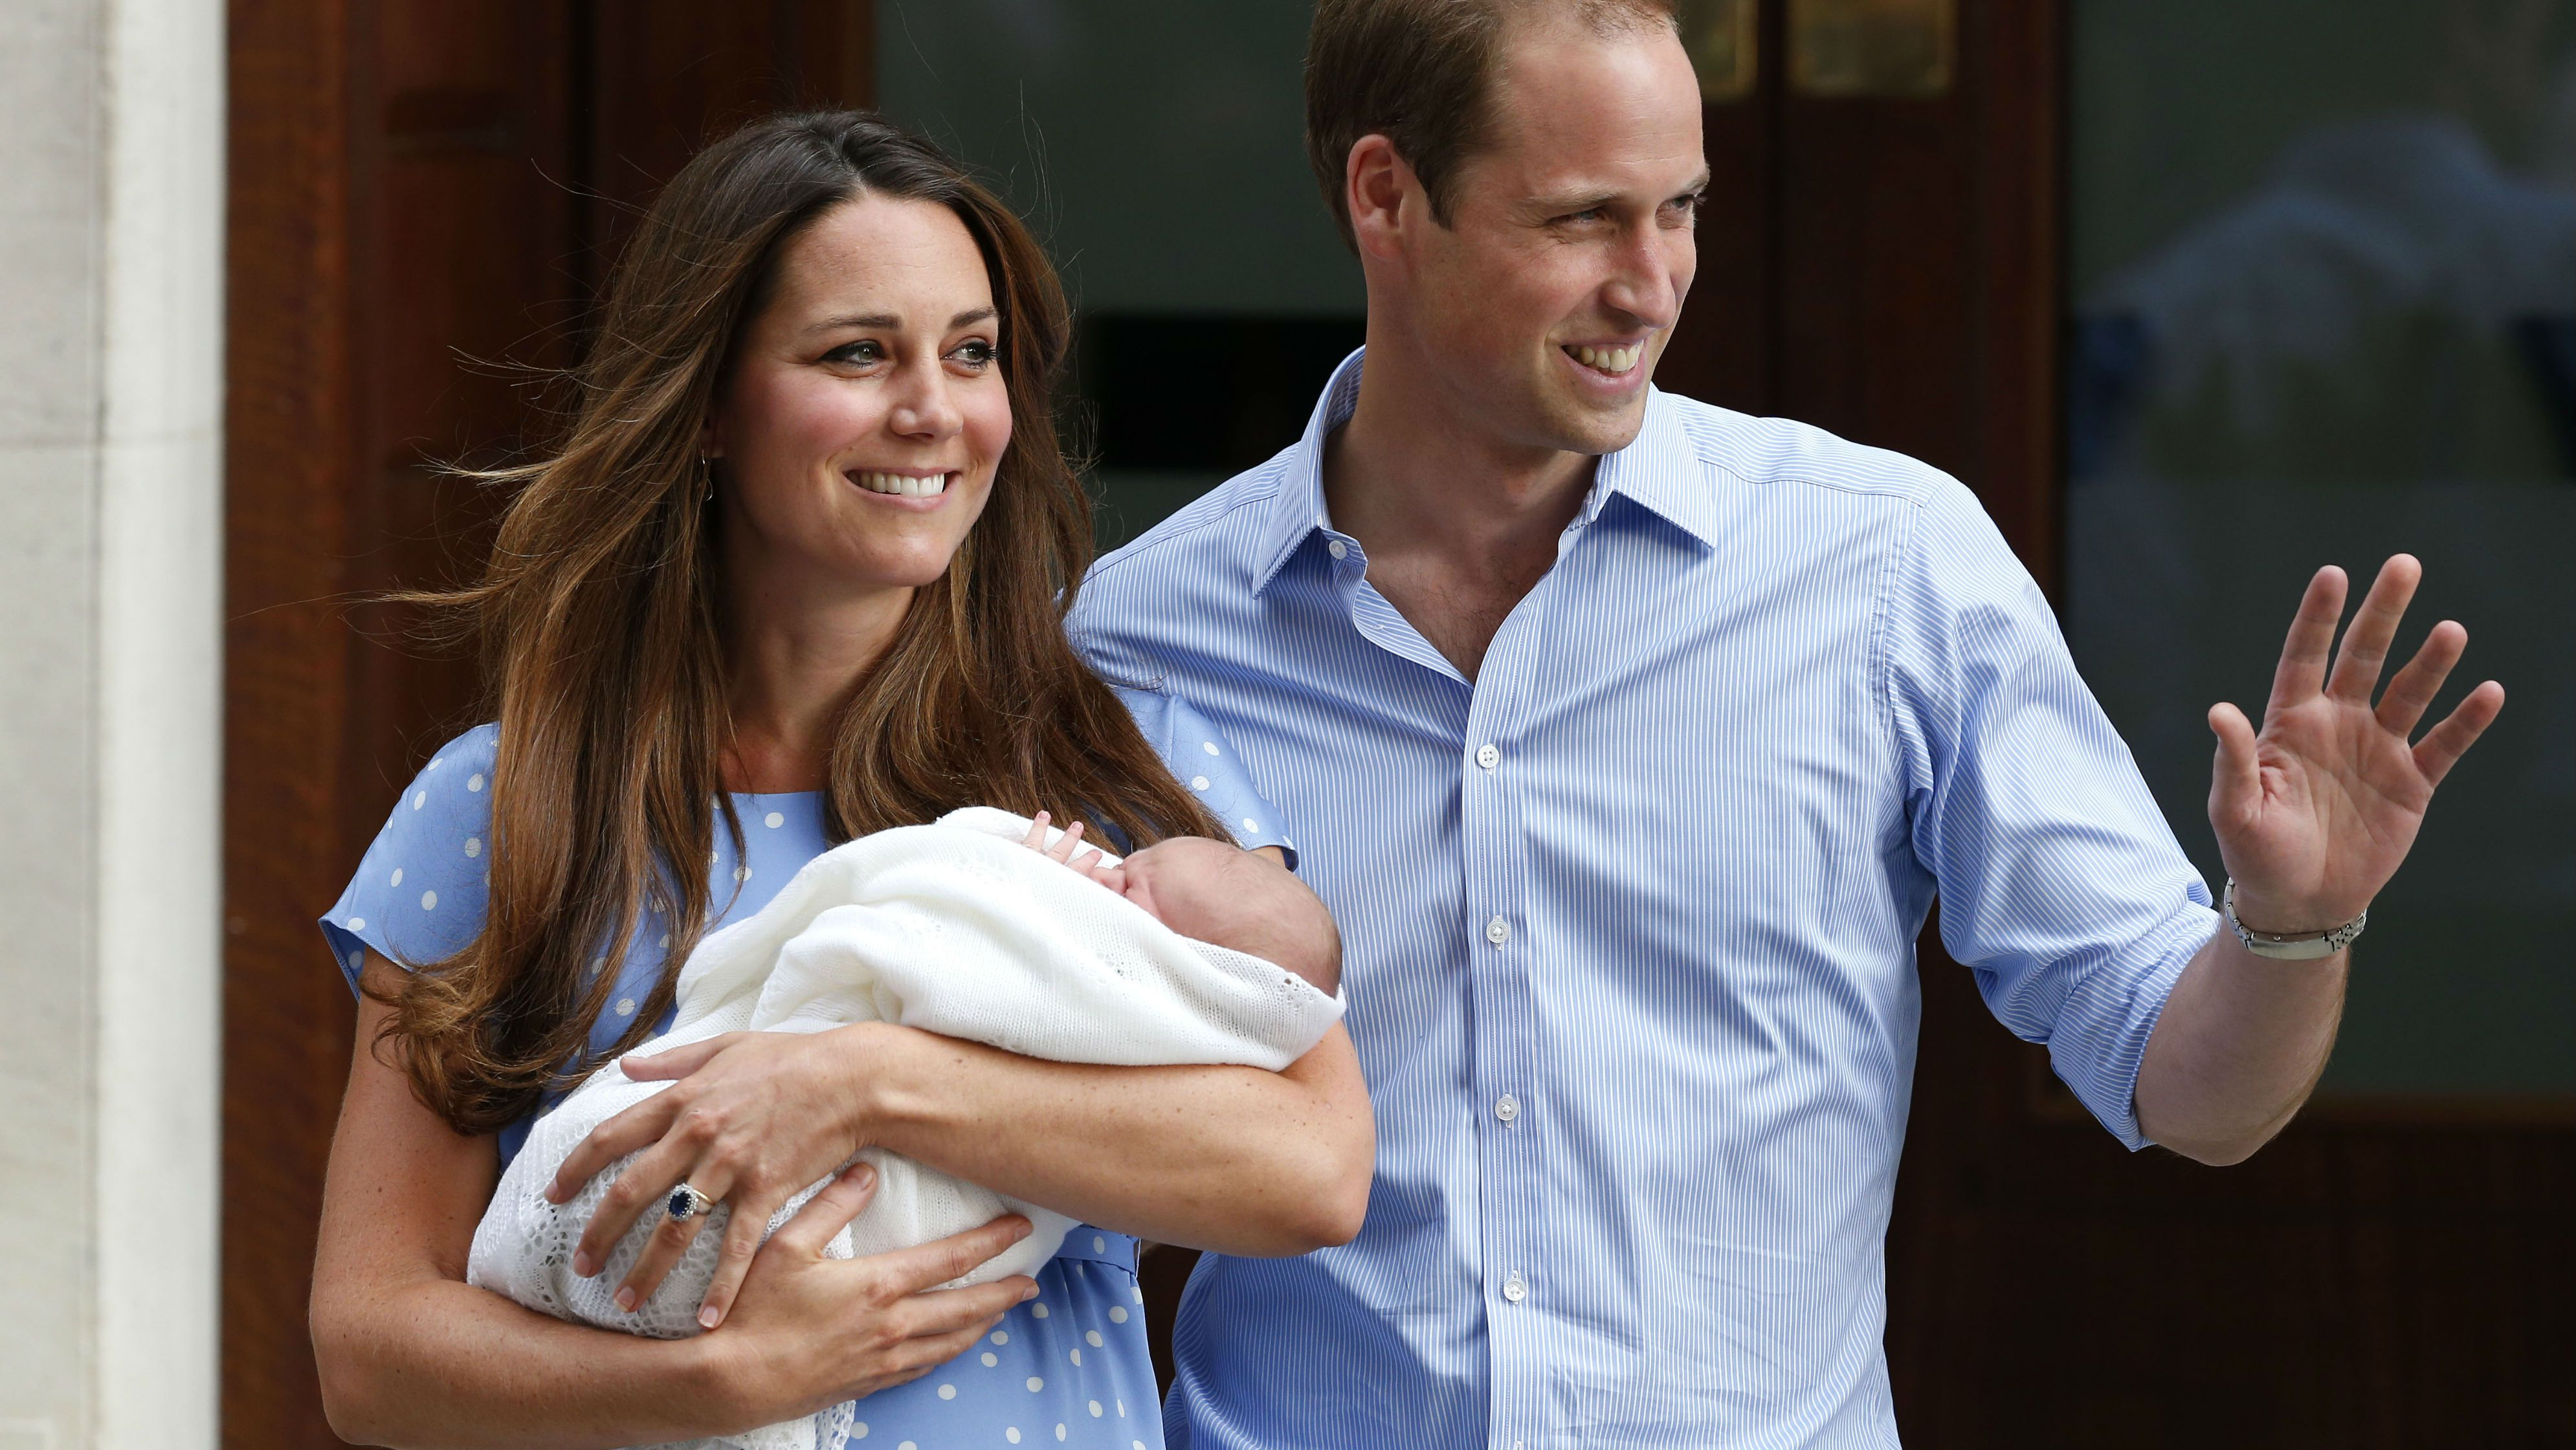 FOR USE AS DESIRED, YEAR END PHOTOS - FILE - Britain's Prince William and Kate, Duchess of Cambridge hold the Prince of Cambridge, Tuesday July 23, 2013, as they pose for photographers outside St. Mary's Hospital exclusive Lindo Wing in London where the Duchess gave birth. (AP Photo/Lefteris Pitarakis, File)